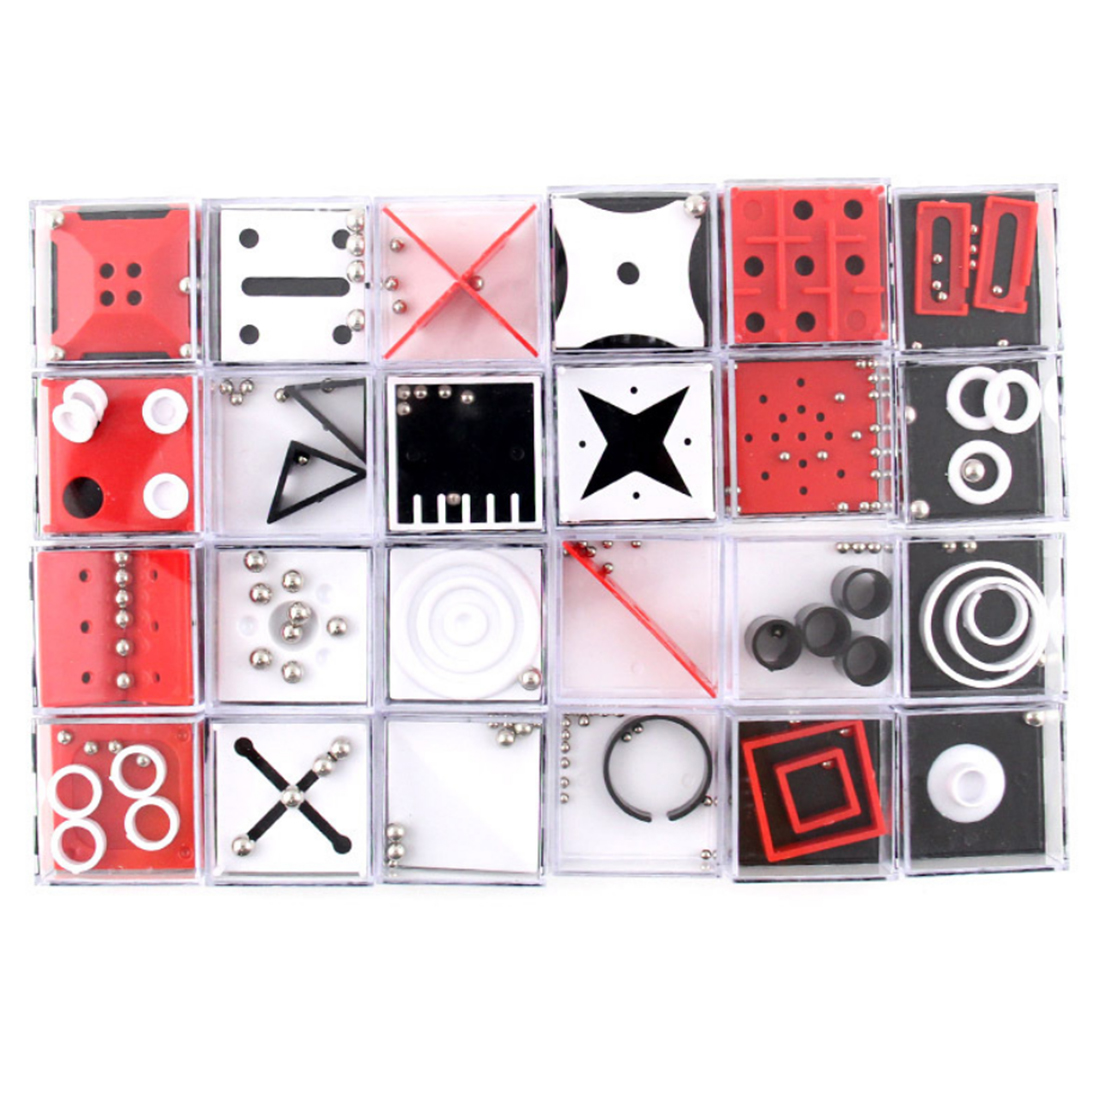 24Pcs Balance Maze Game Puzzle Boxes With Steel Ball Brain Teaser Educational Toys Gift Decompression Toy For Kid Adult